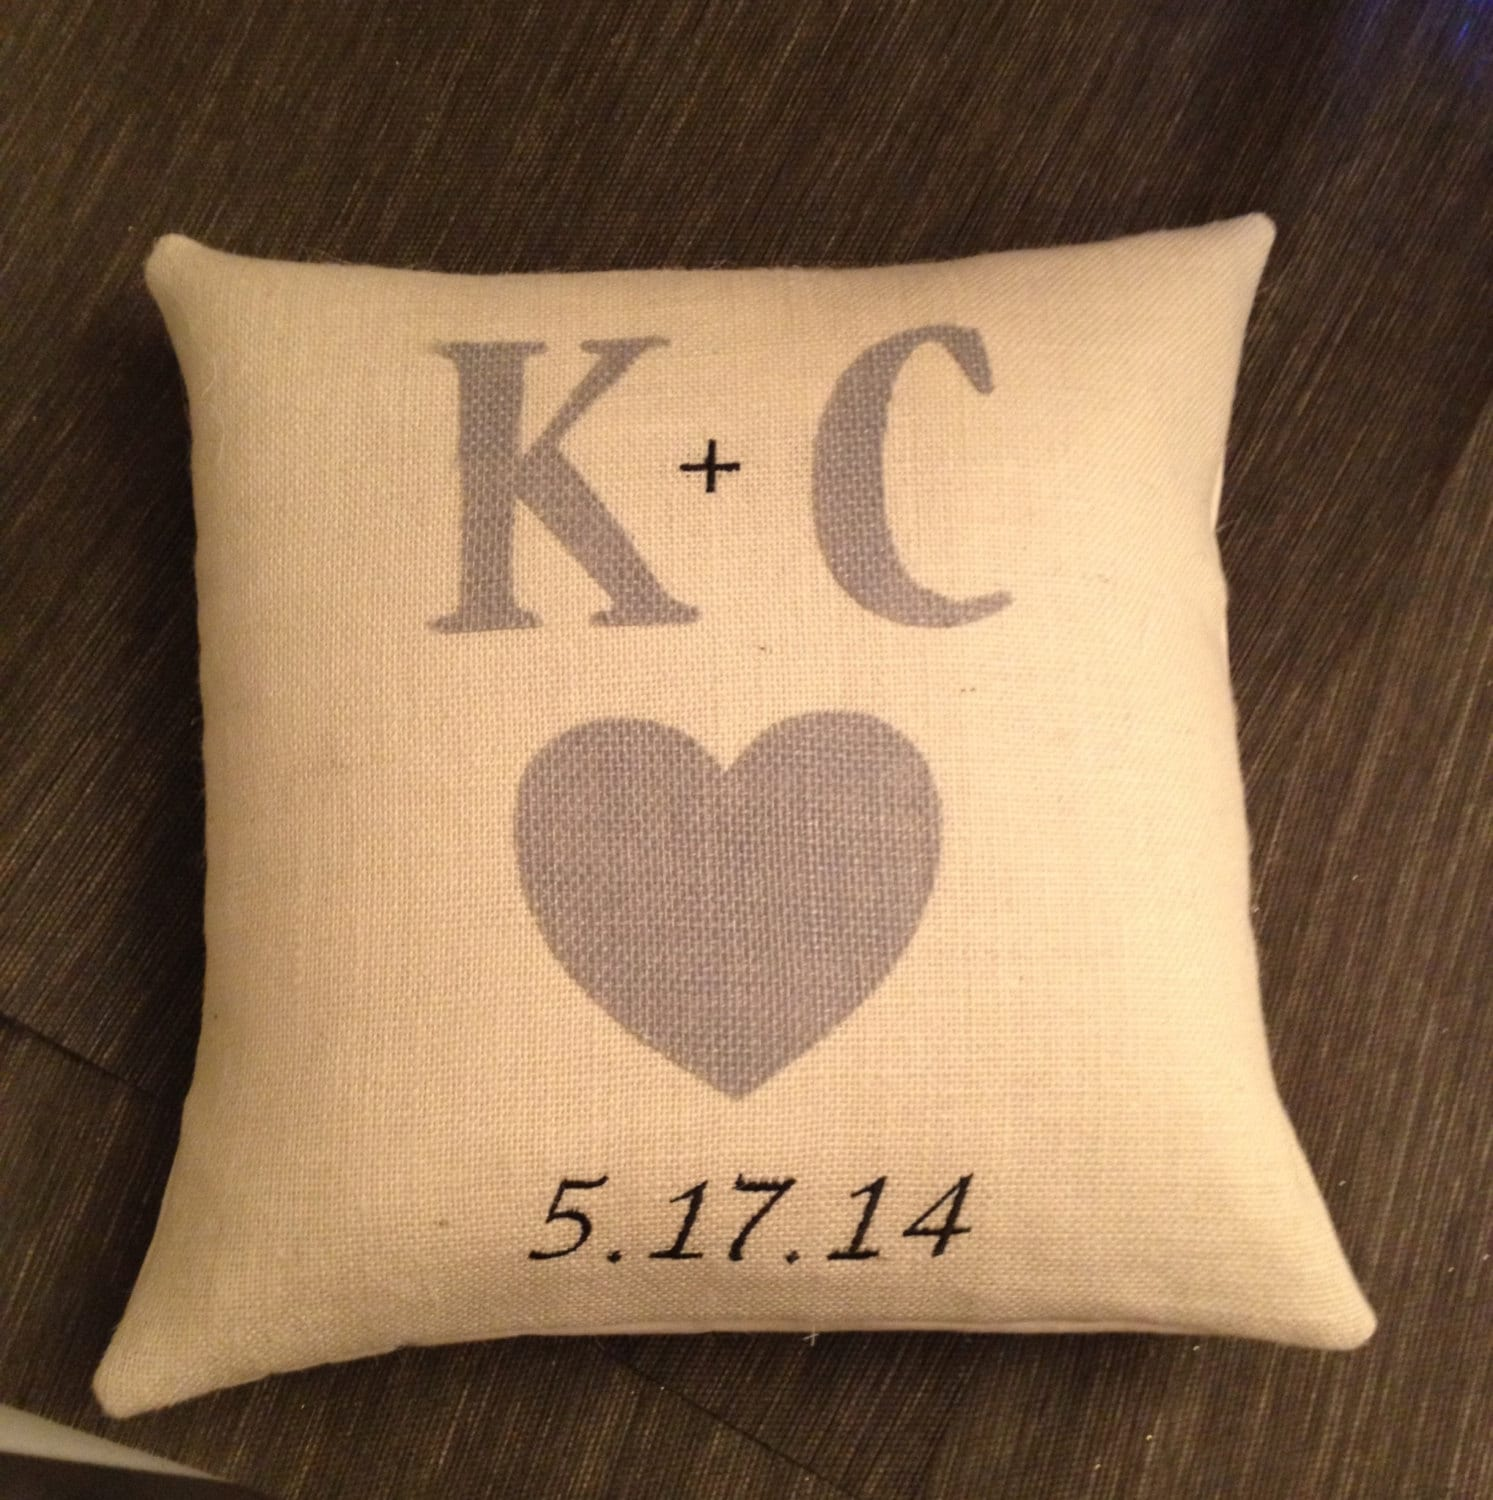 Personalized Pillows For Wedding Gift: Wedding Gift Pillow Personalized Embroidered Ivory Burlap